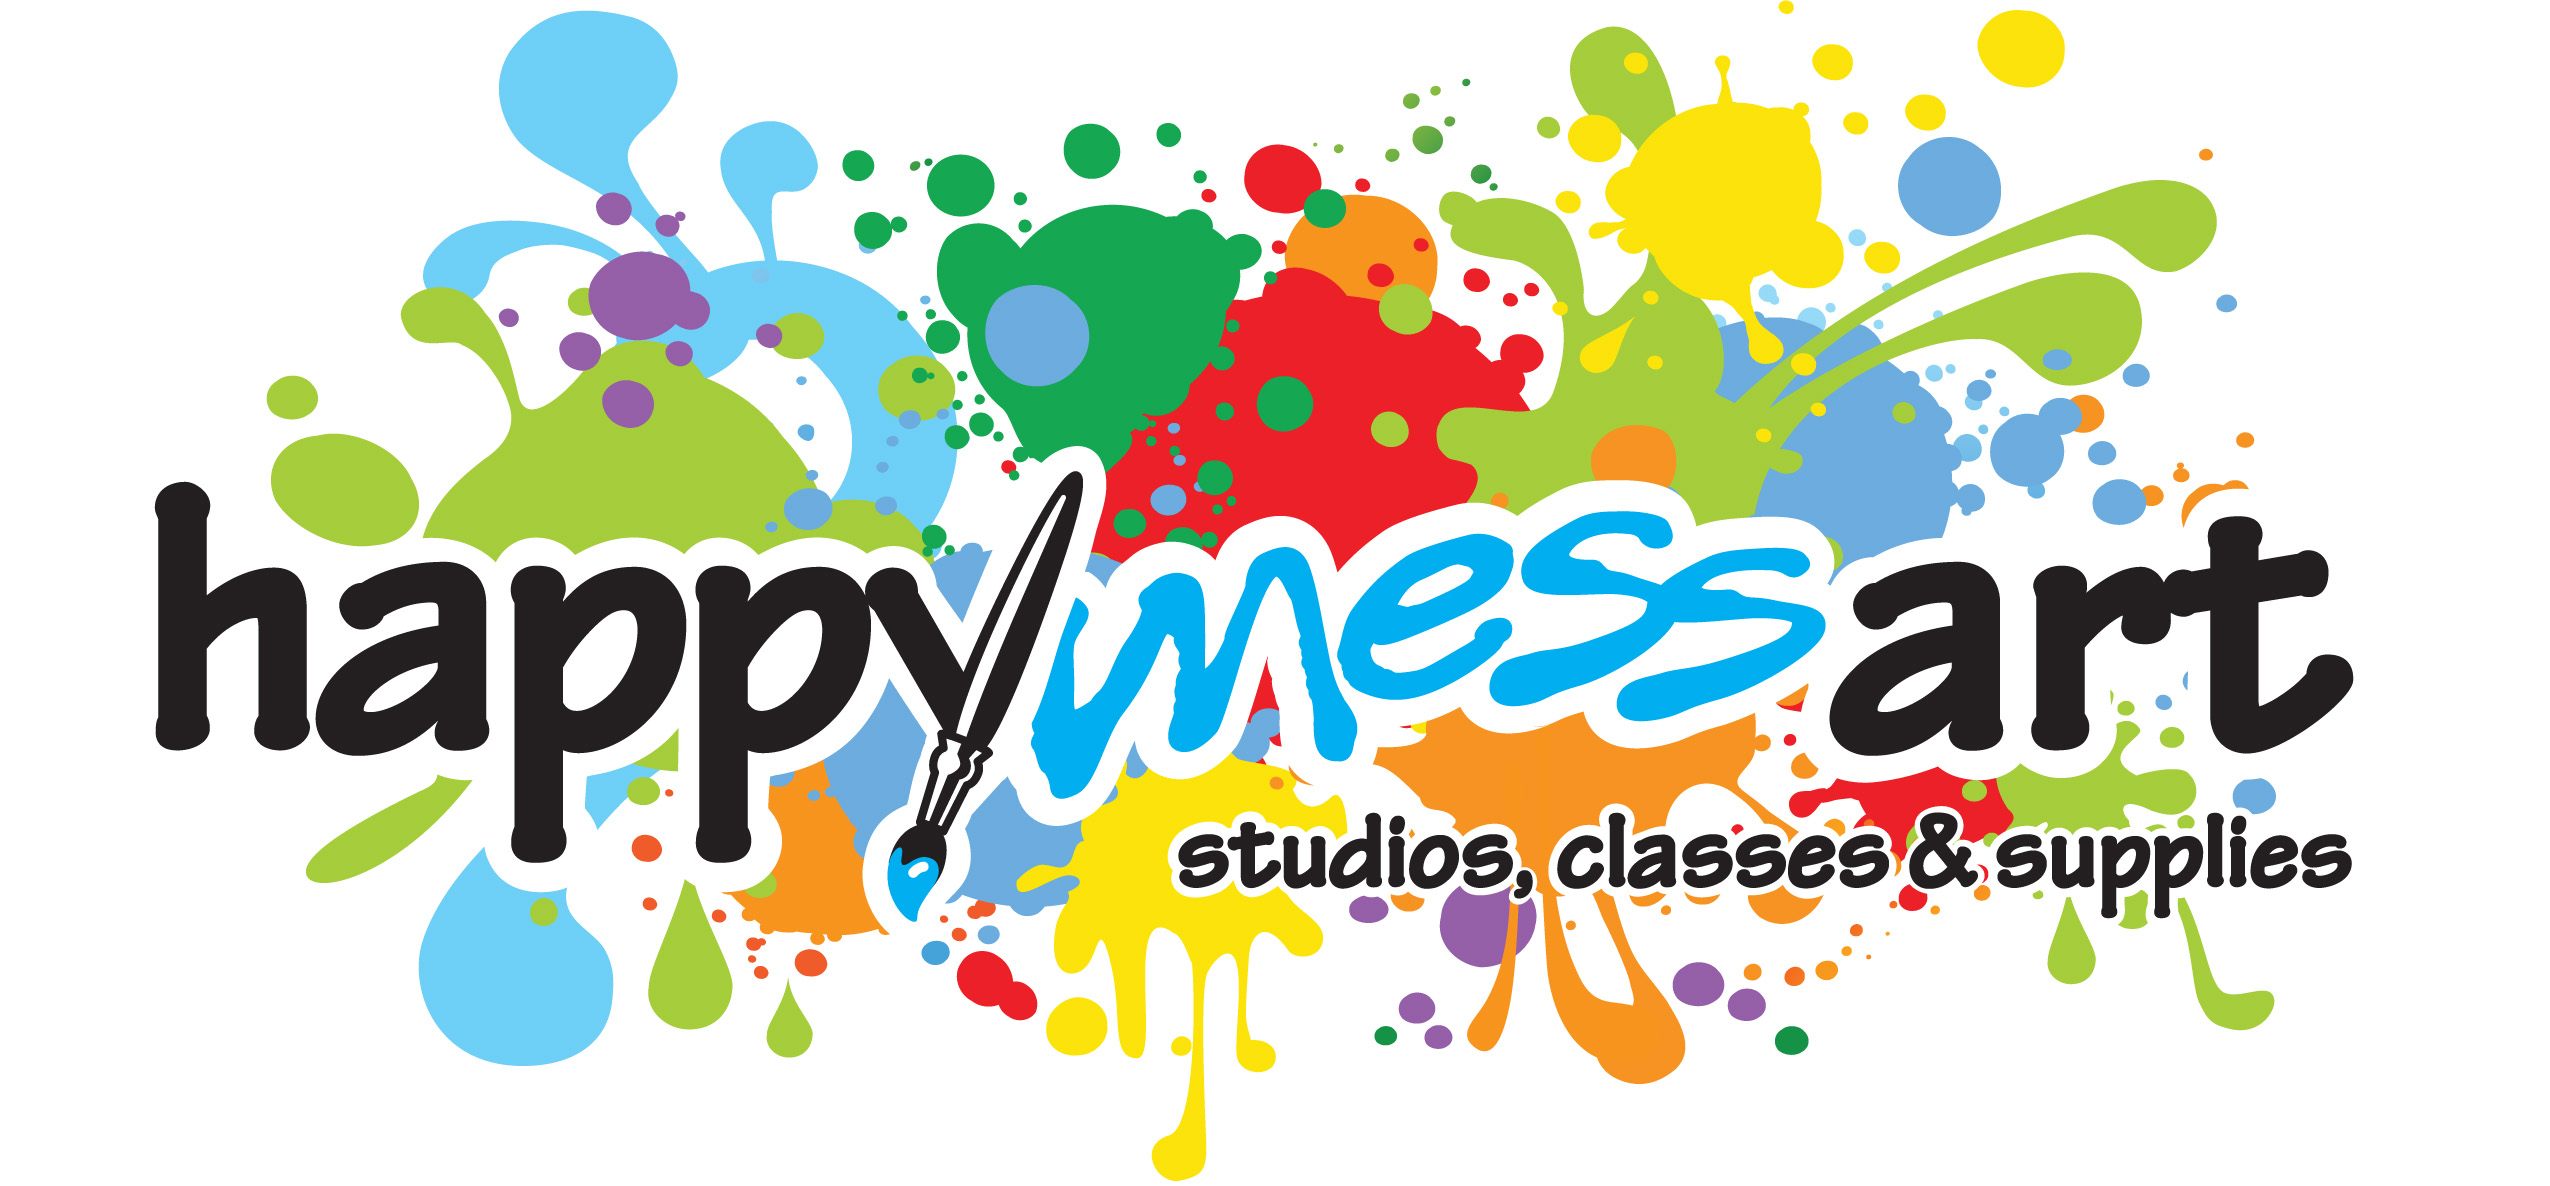 2hr ARTini class for 12 people from Happymess Art Studio - Classes and Supplies 2hr ARTini class for 12 people - Paint a essterpiece with your friends - led by Carrack Director and former HappyMess Art Instructor Laura Ritchie - in a location of your choice or at HappyMess Studio. 420.00